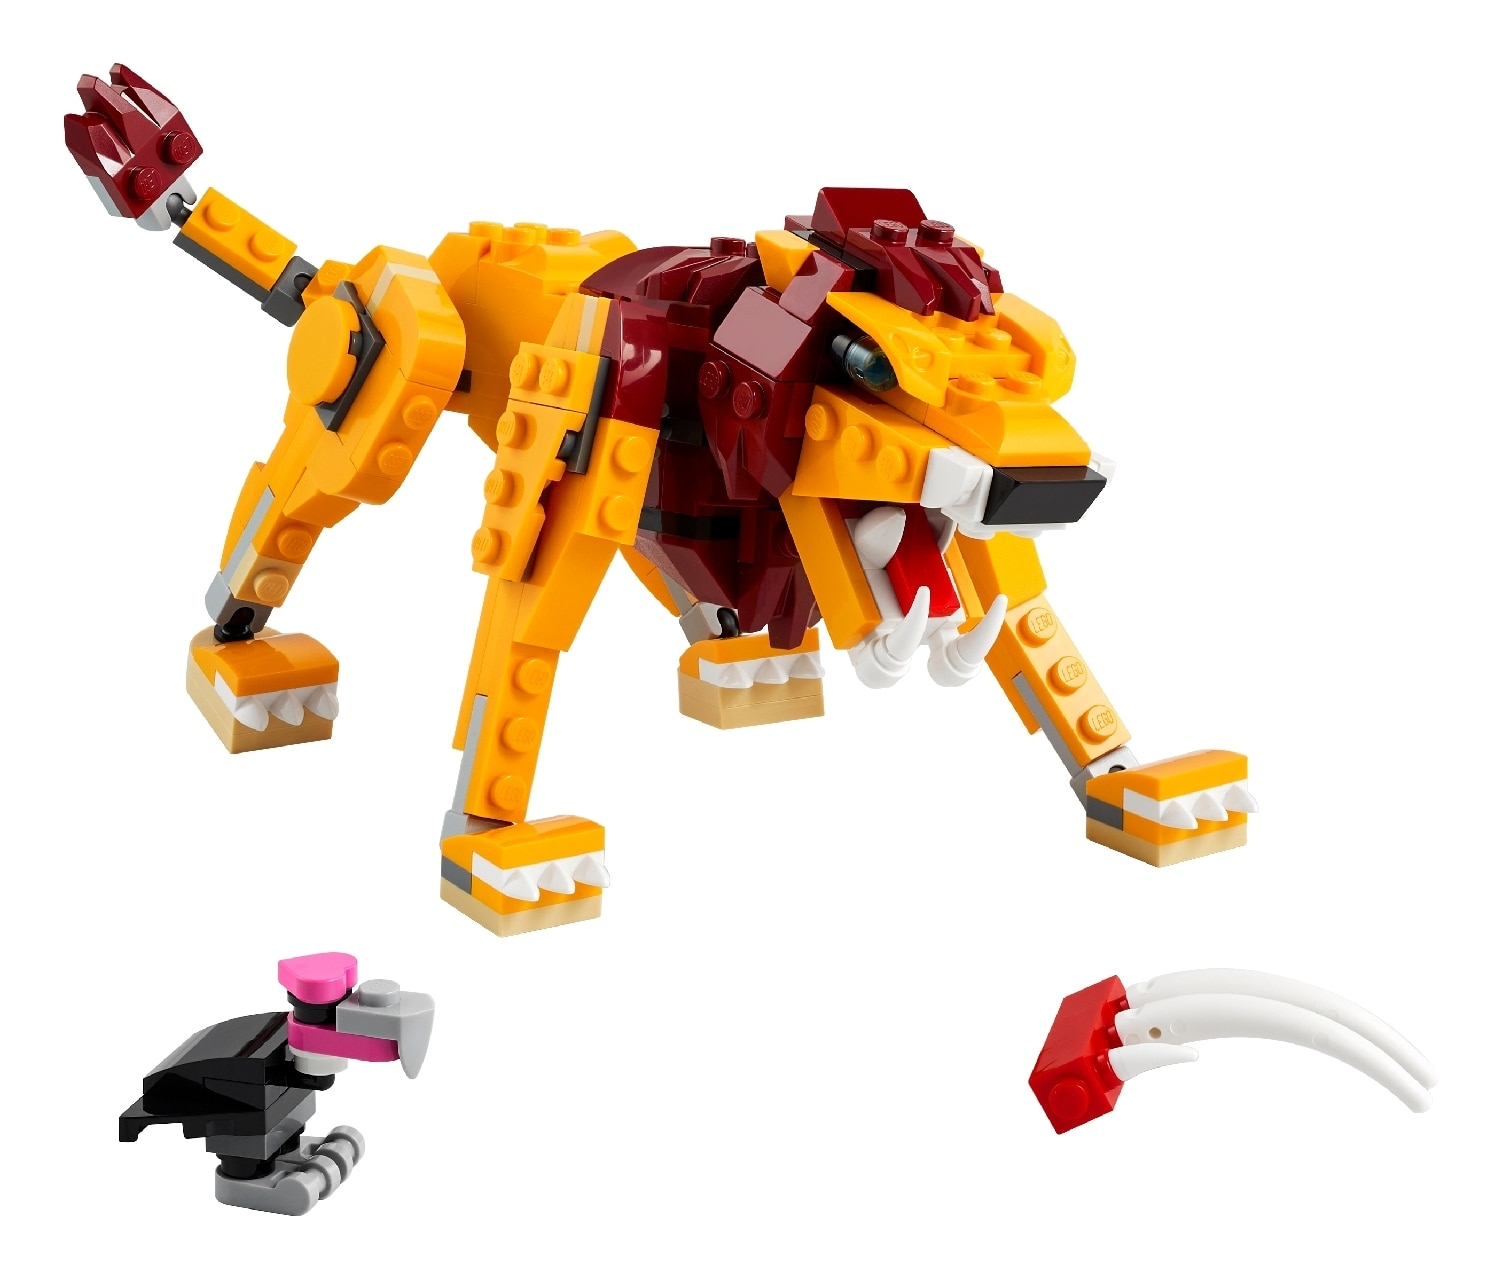 LEGO® Creator 3in1 Wild Lion